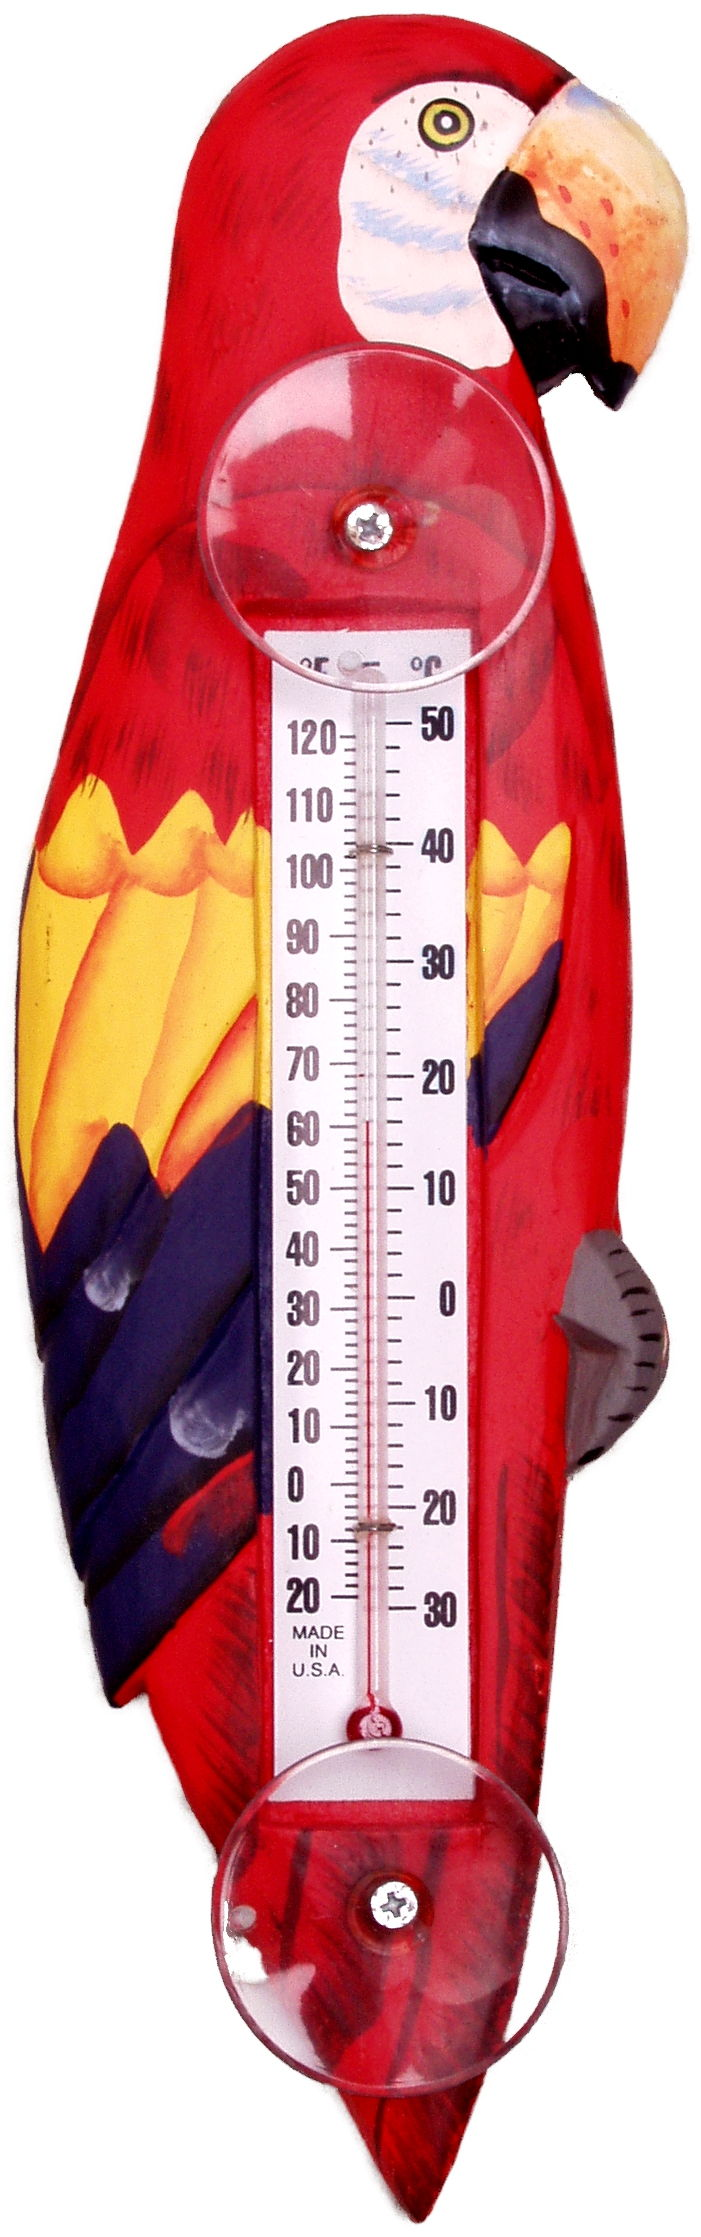 Red Parrot Large Window Thermometer